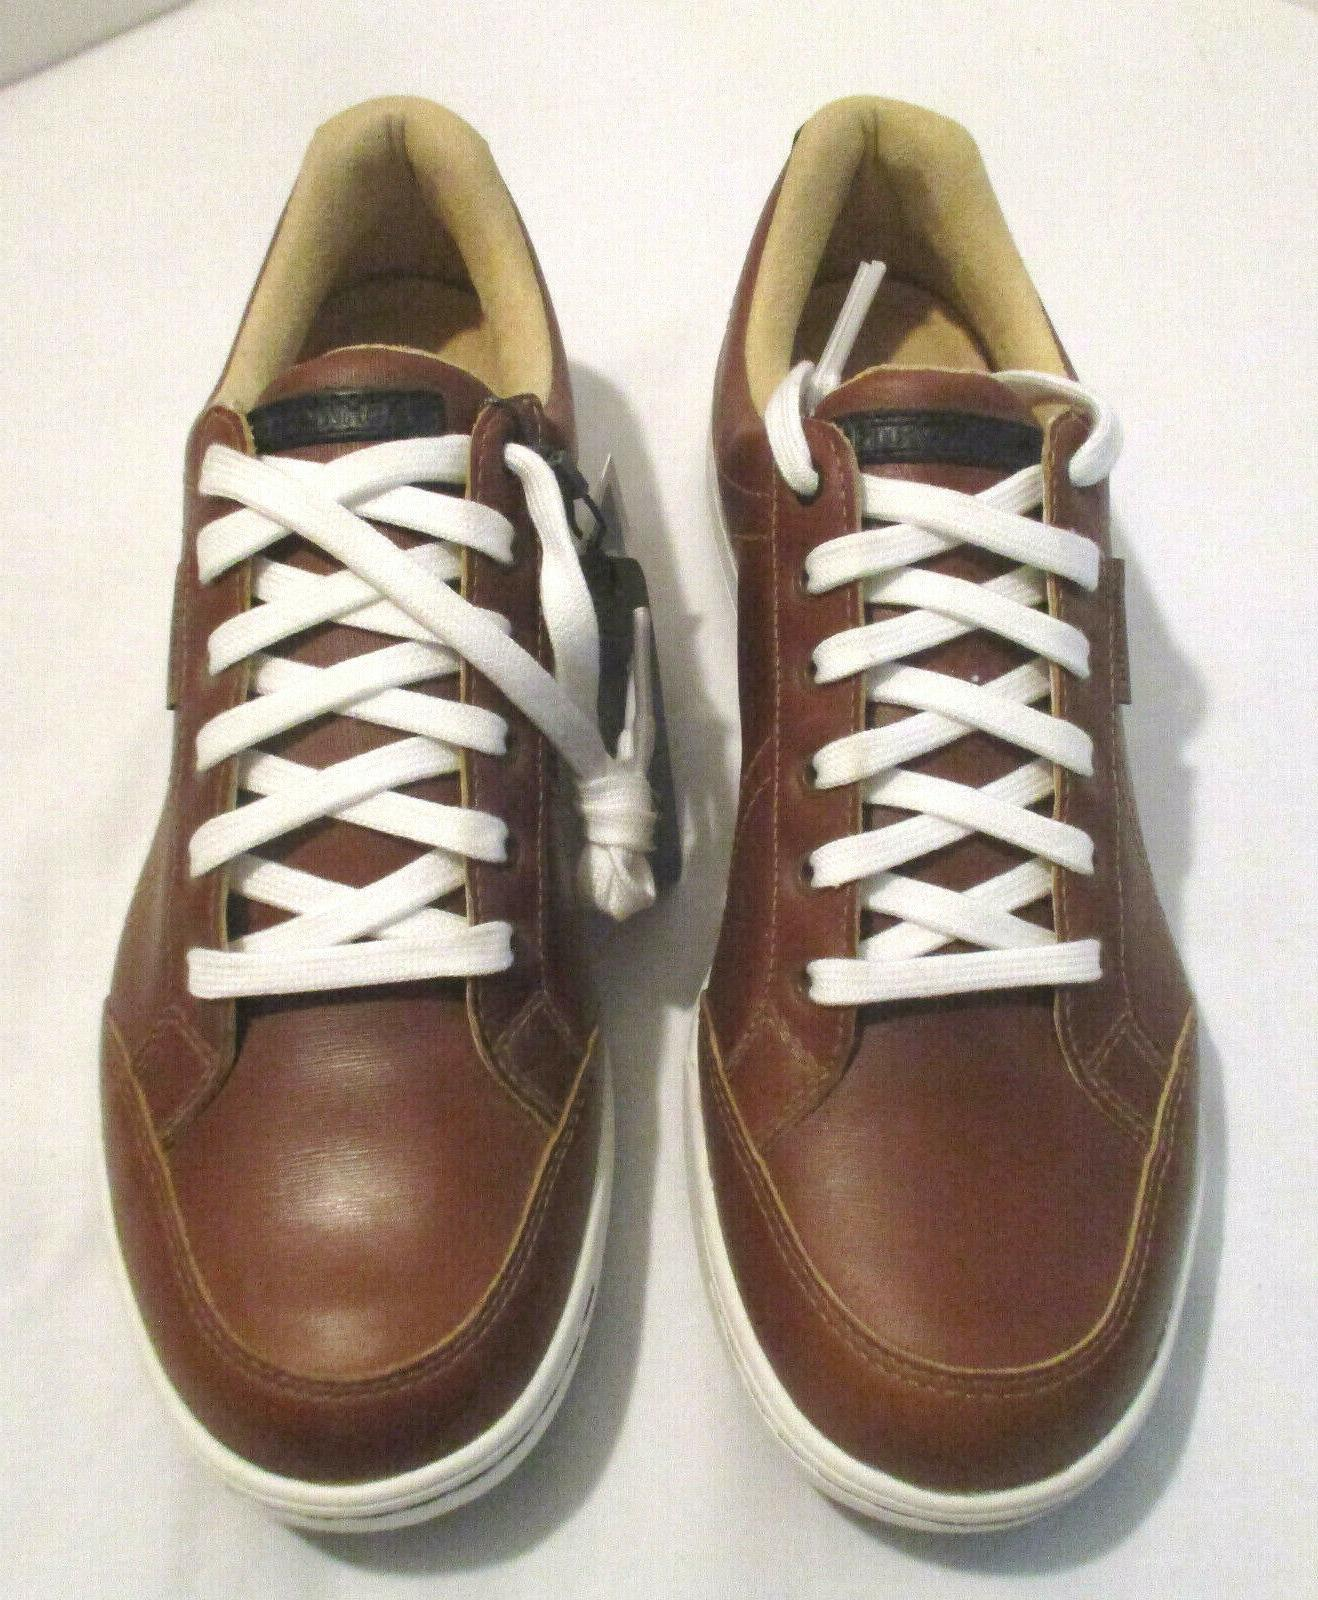 mens cardiff adc golf shoes brown size